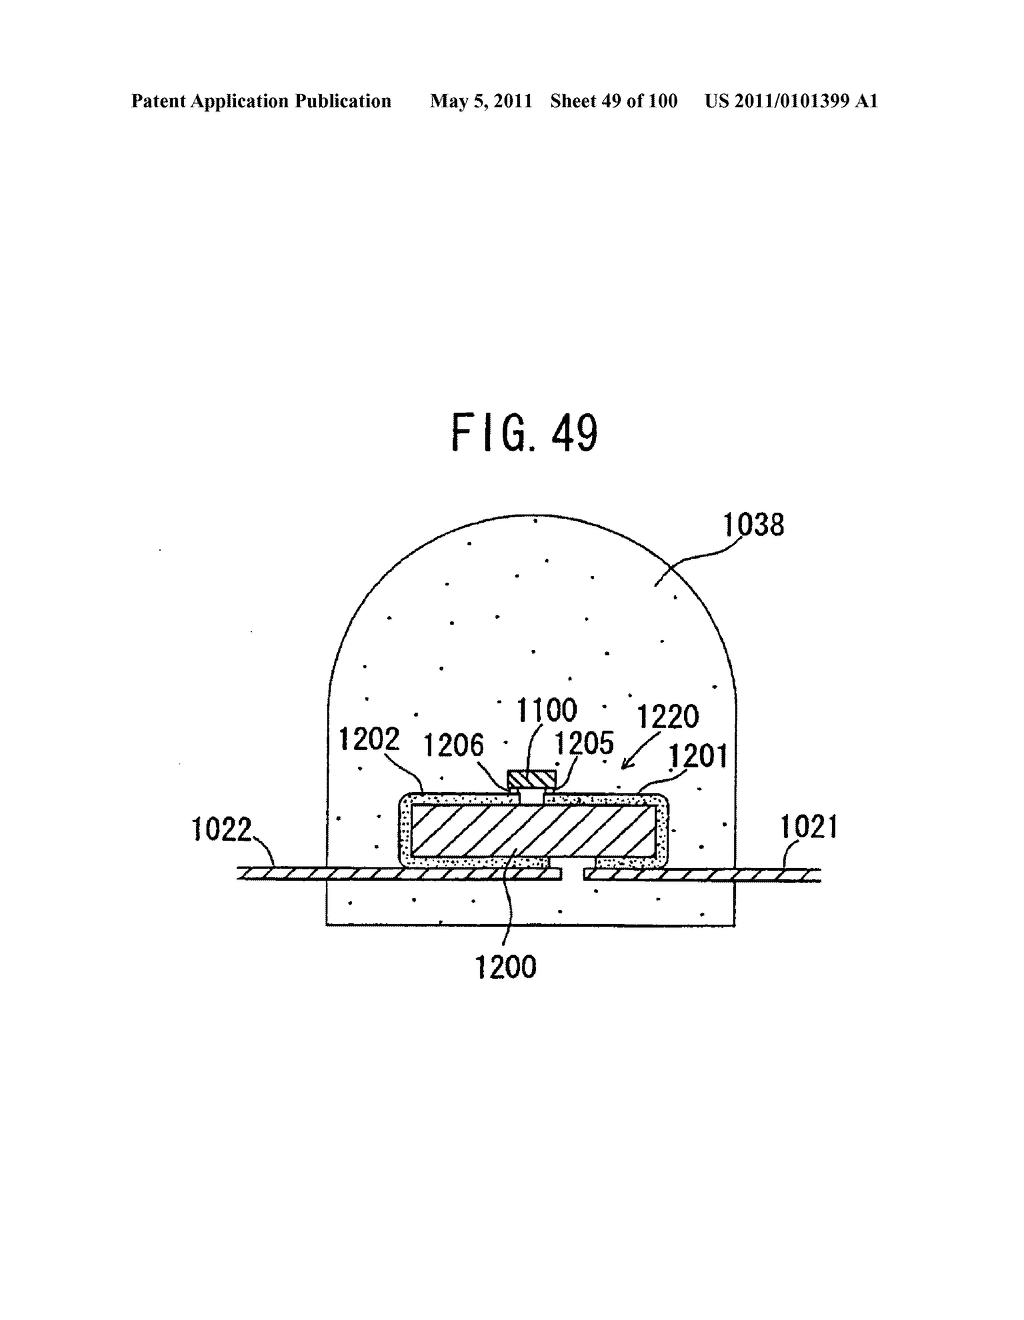 Solid element device and method for manufacturing the same - diagram, schematic, and image 50